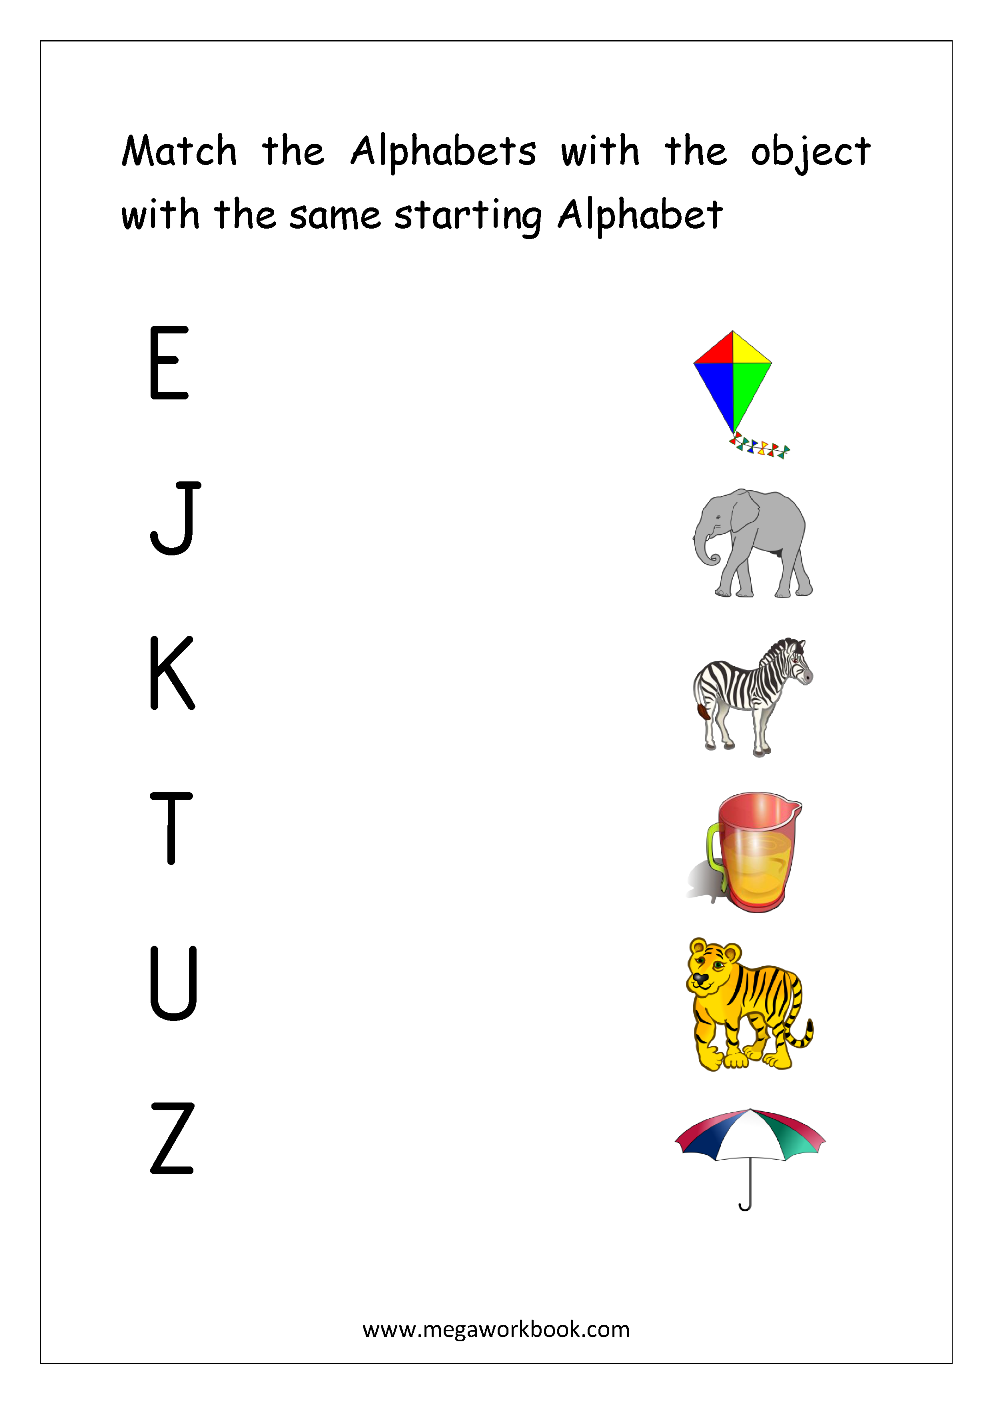 Worksheet Matching Alphabets With Pictures Worksheets free english worksheets alphabet matching megaworkbook worksheet match object with the starting capital letters